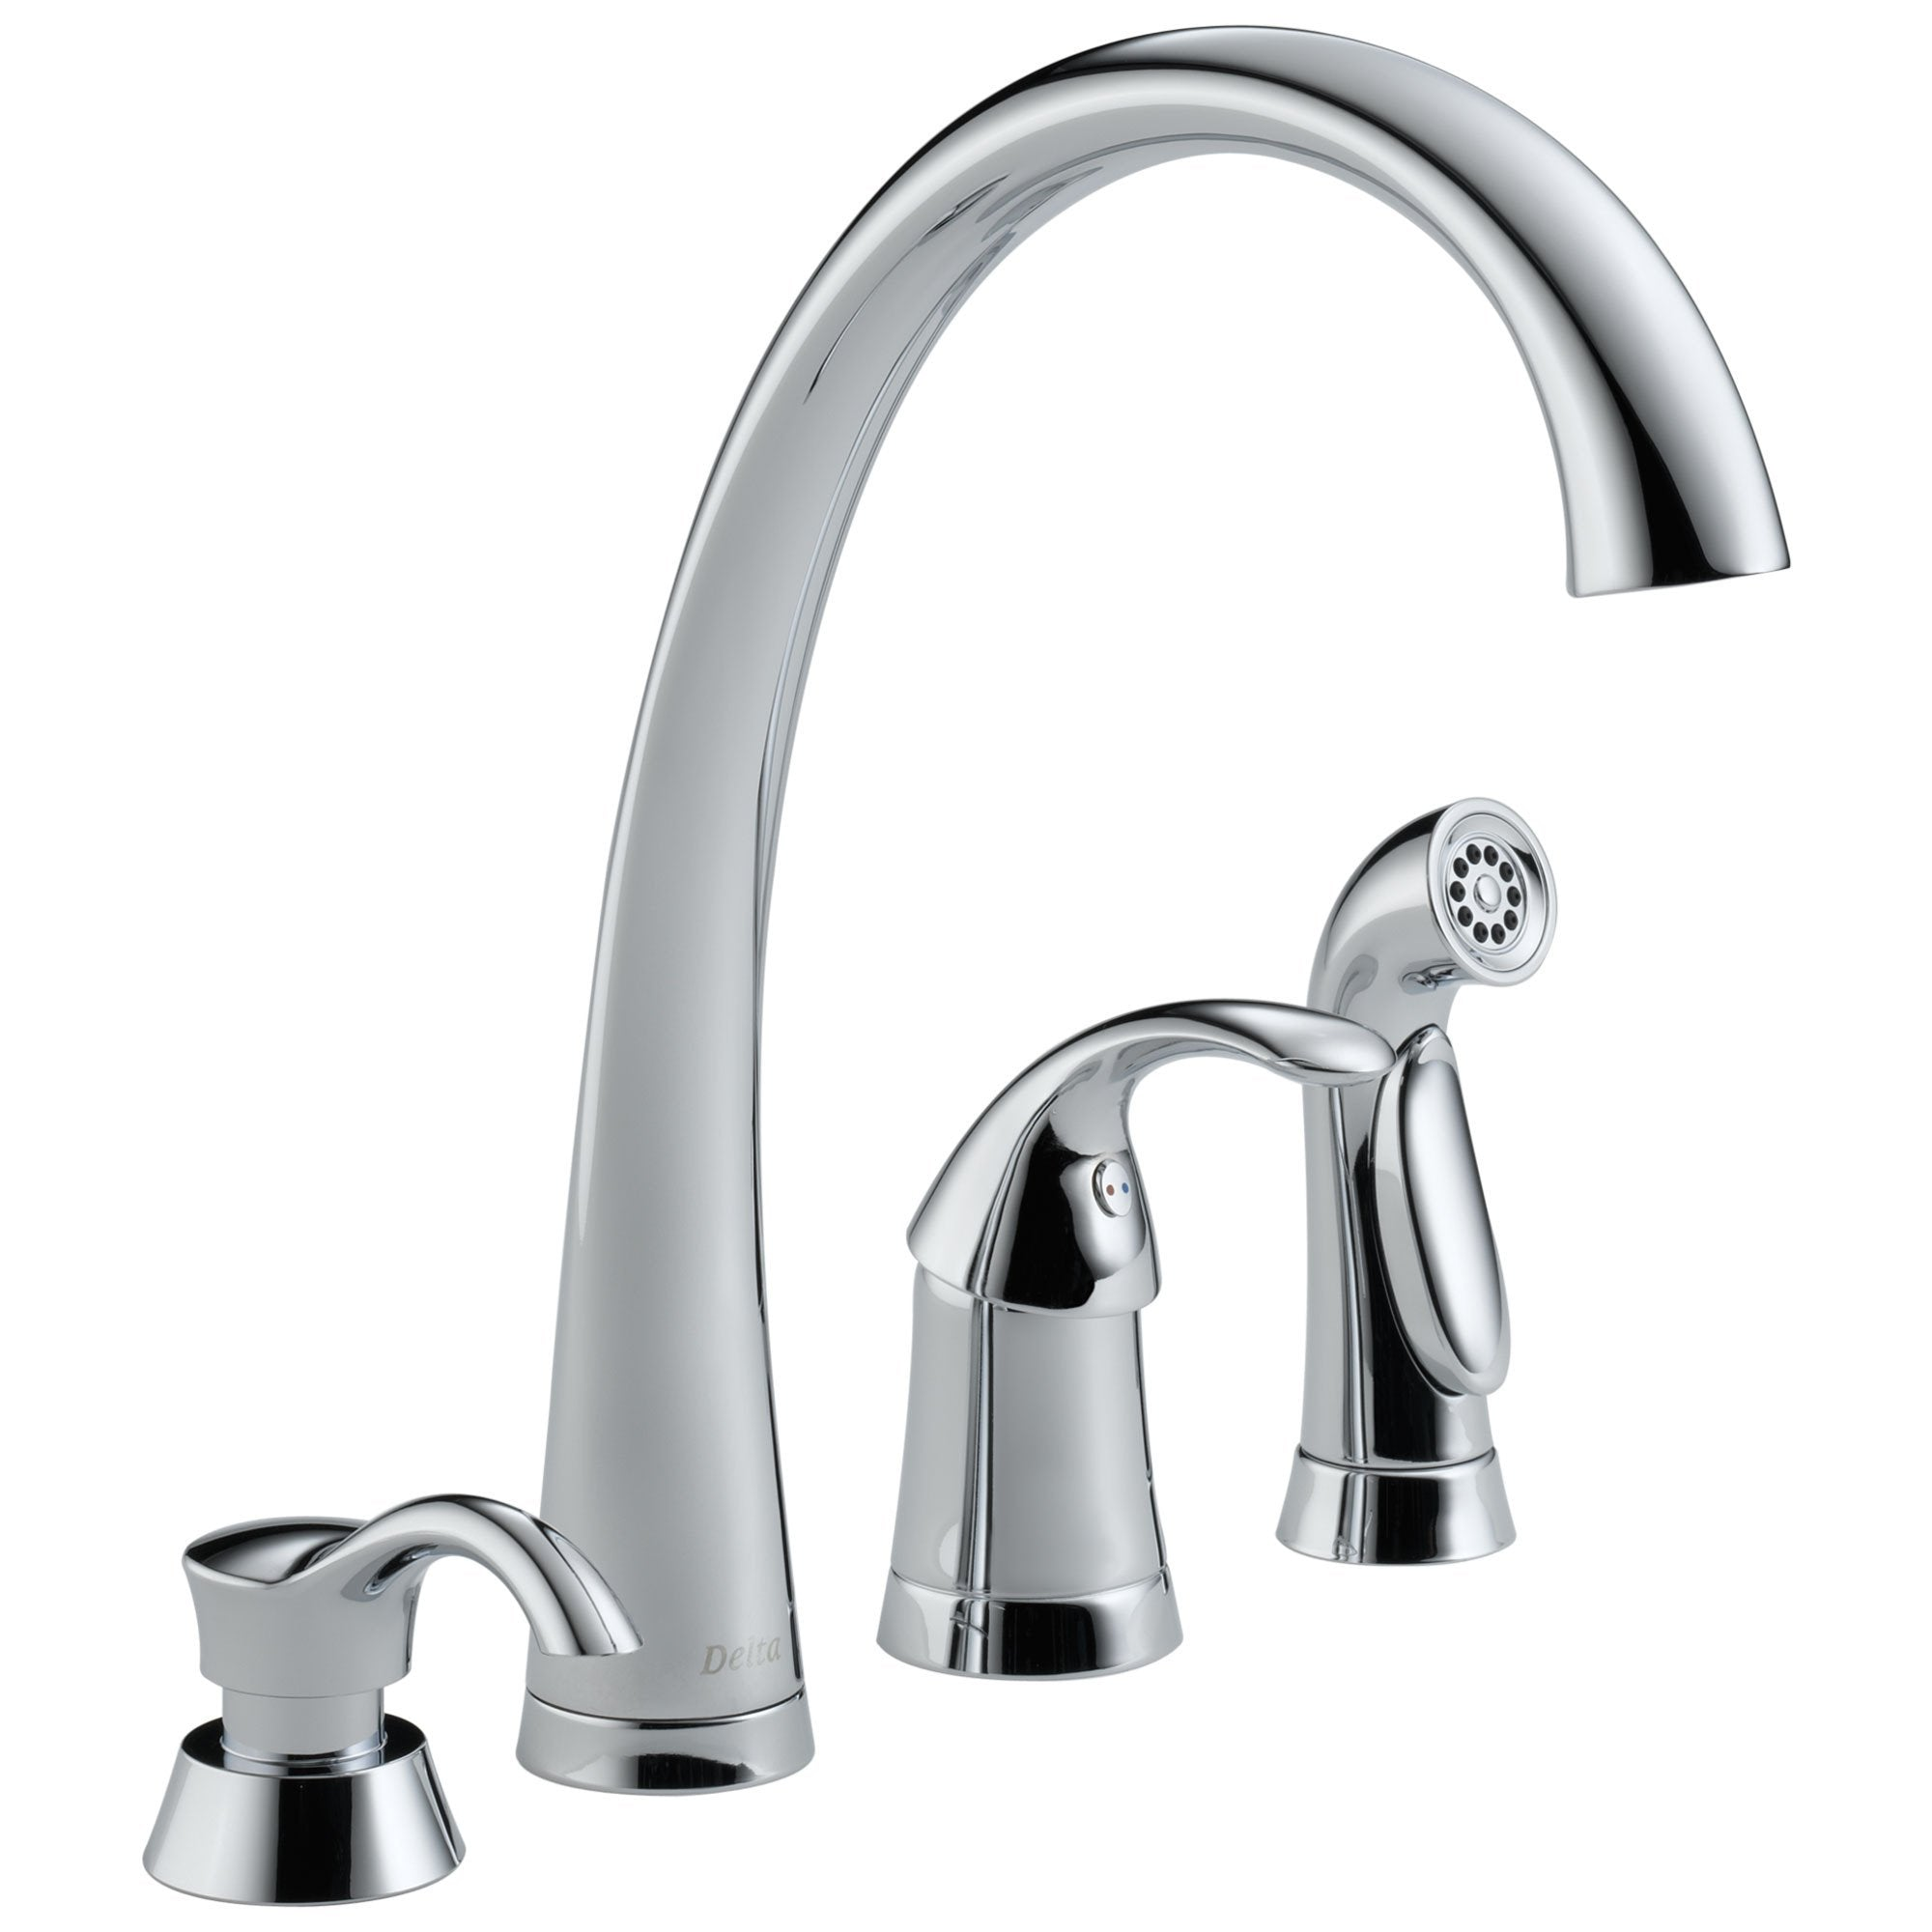 Delta Pilar Collection Chrome Finish Single Handle Kitchen Sink Faucet with  Sprayer and Soap Dispenser 732737